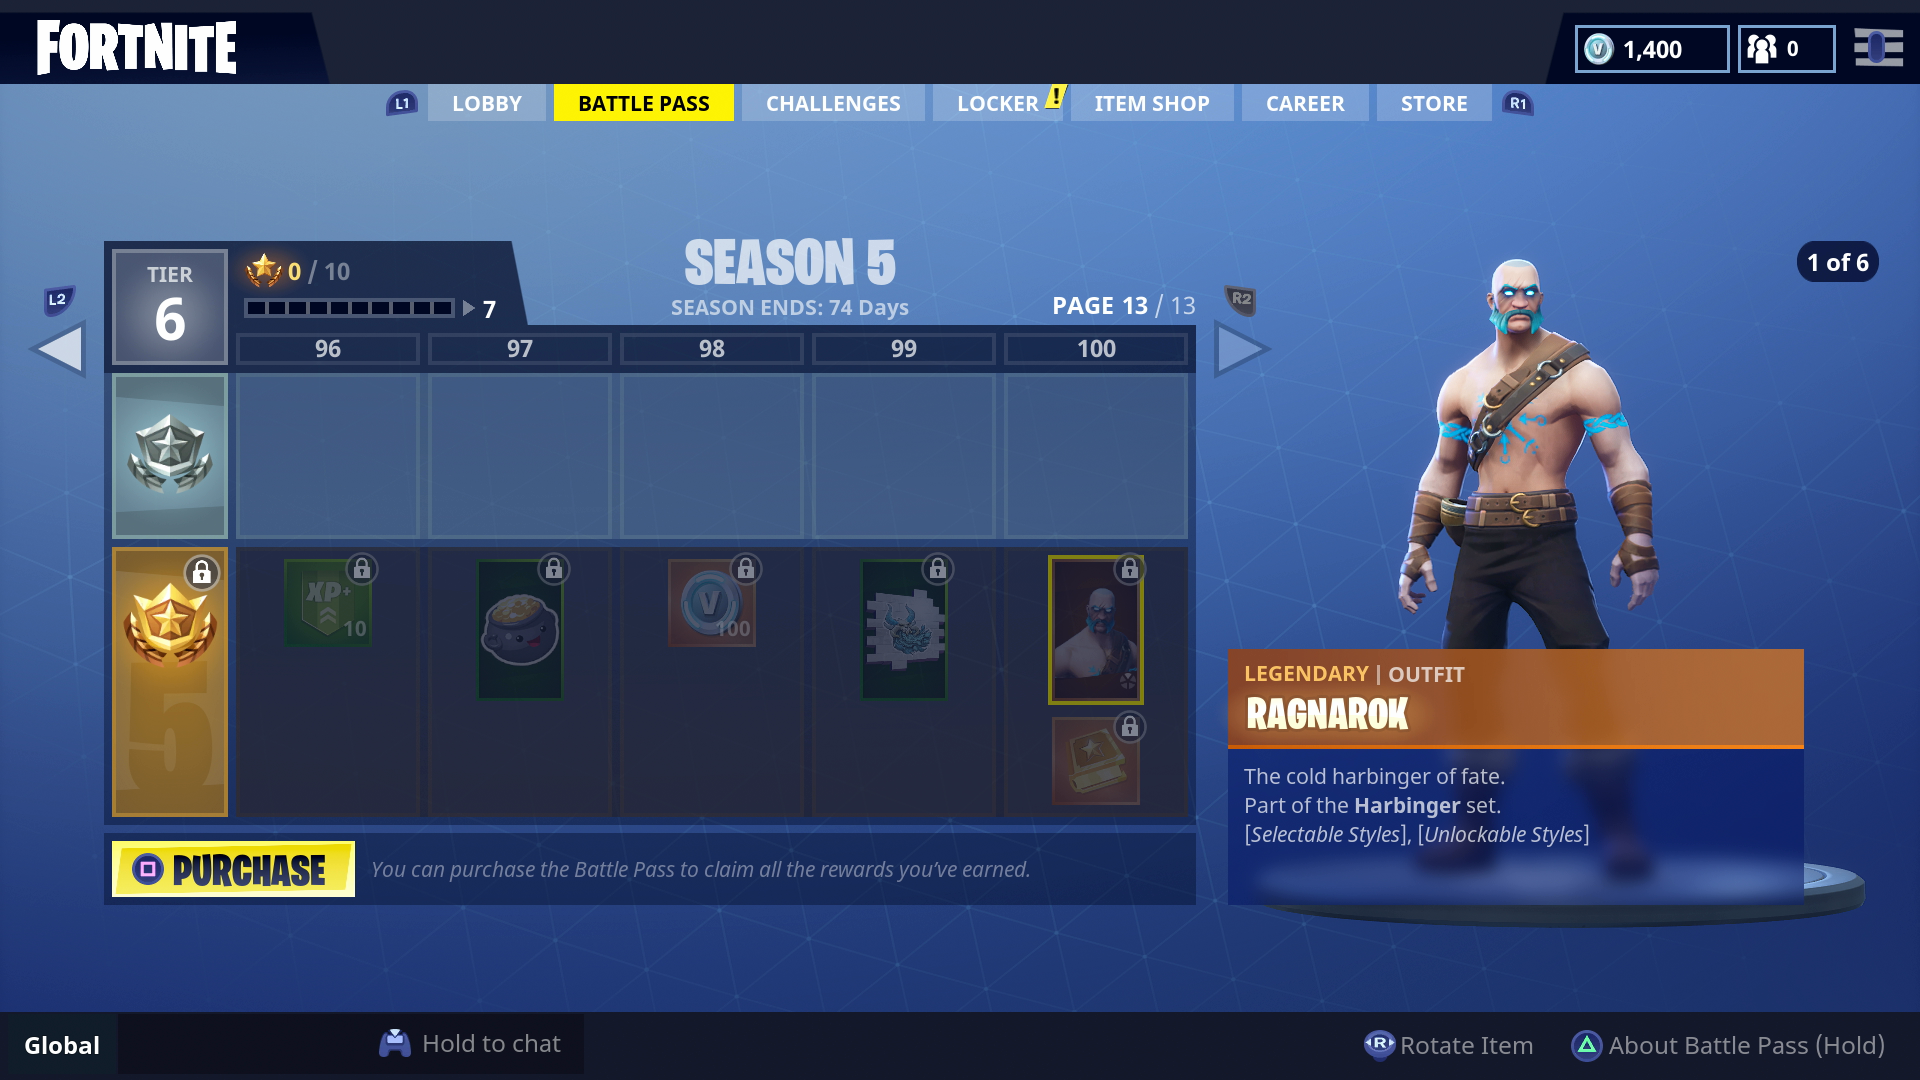 Fortnite Season 5 Skins All The New Battle Pass Skins Including